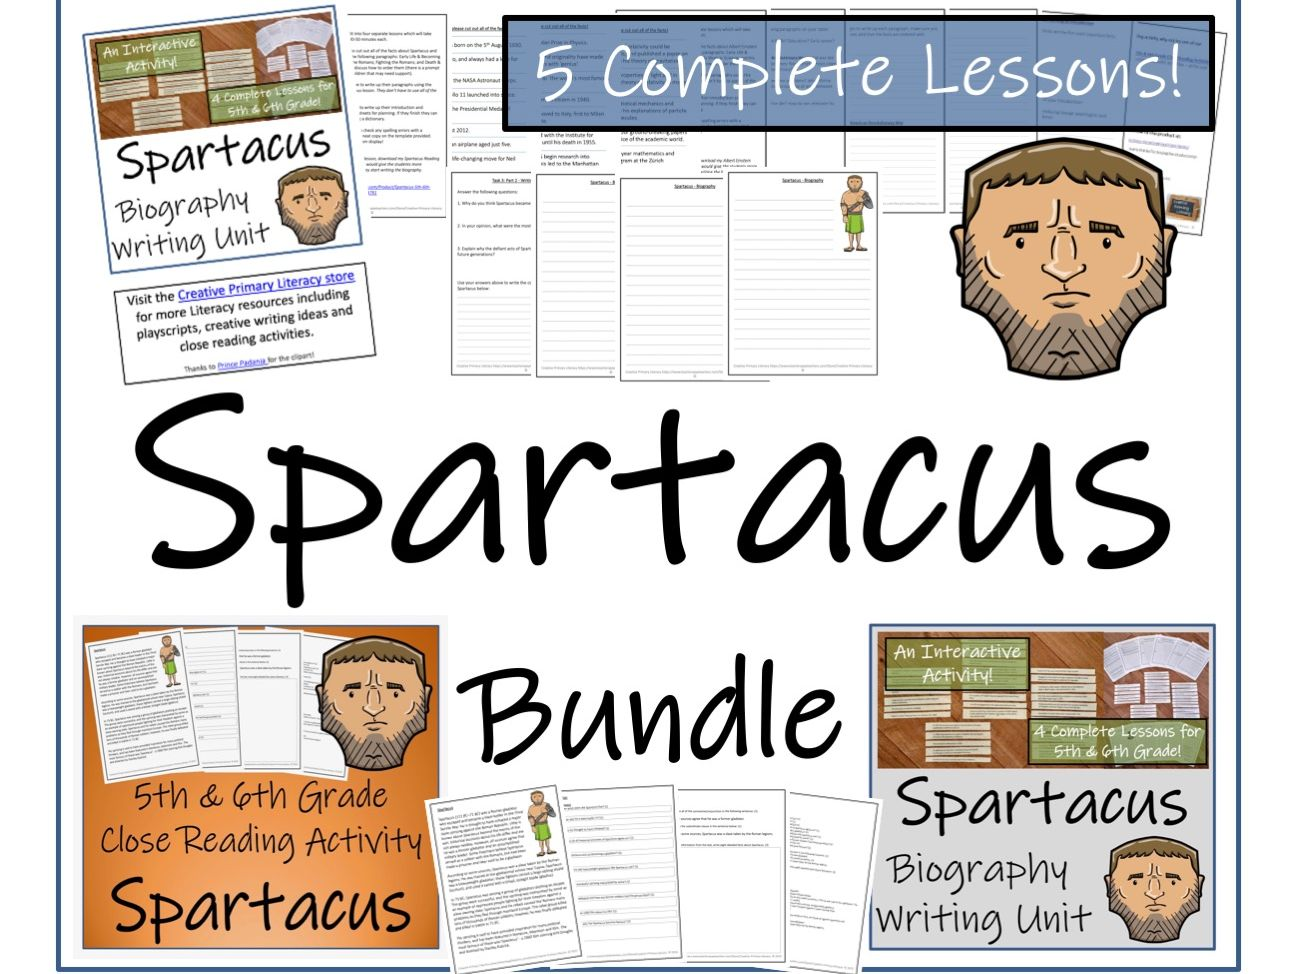 UKS2 History - Bundle of Activities about Spartacus